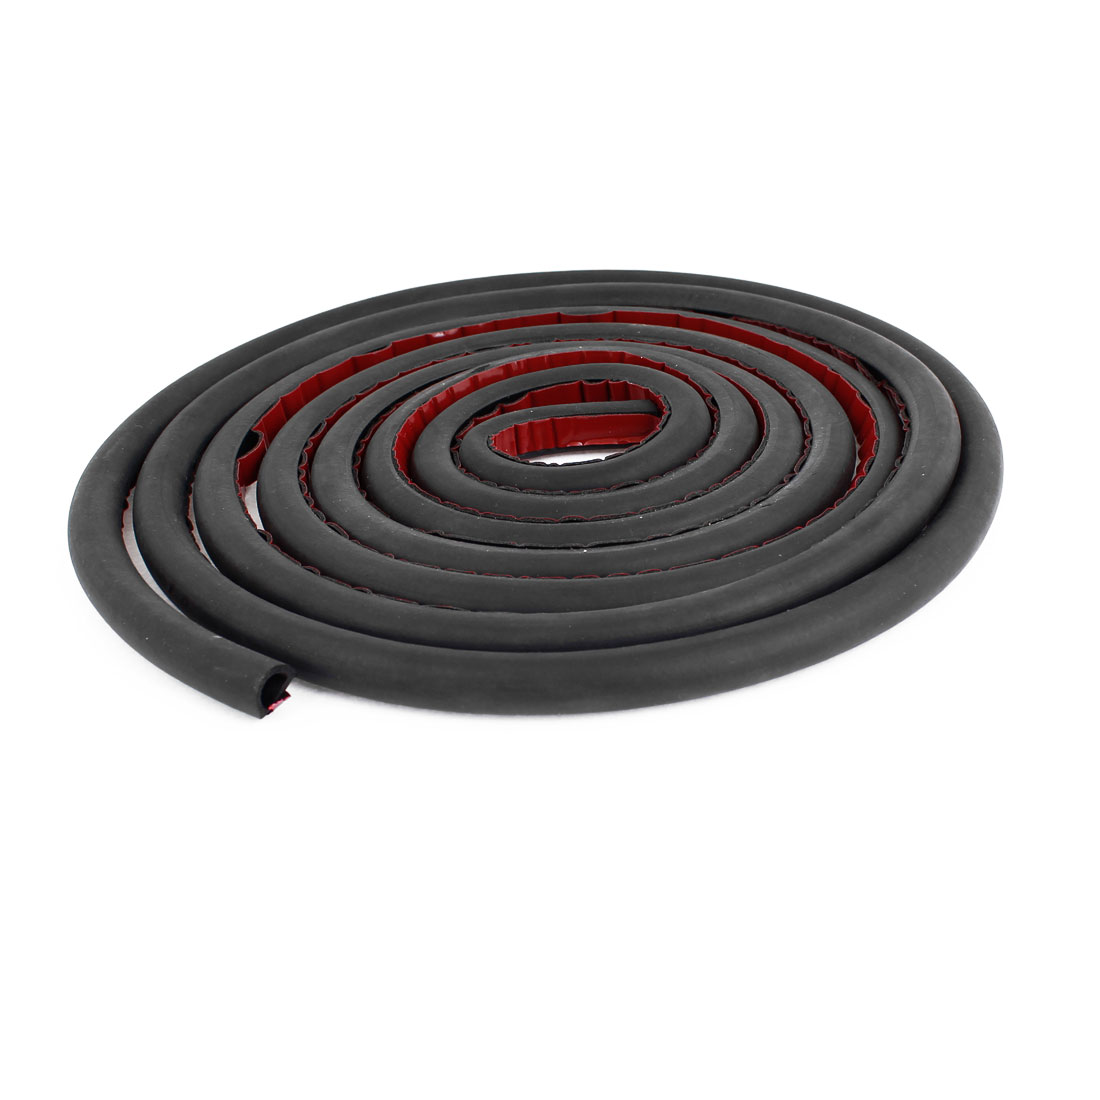 Auto Car Black D Shaped Rubber Hollow Air Sealed Seal Strip 9.8ft